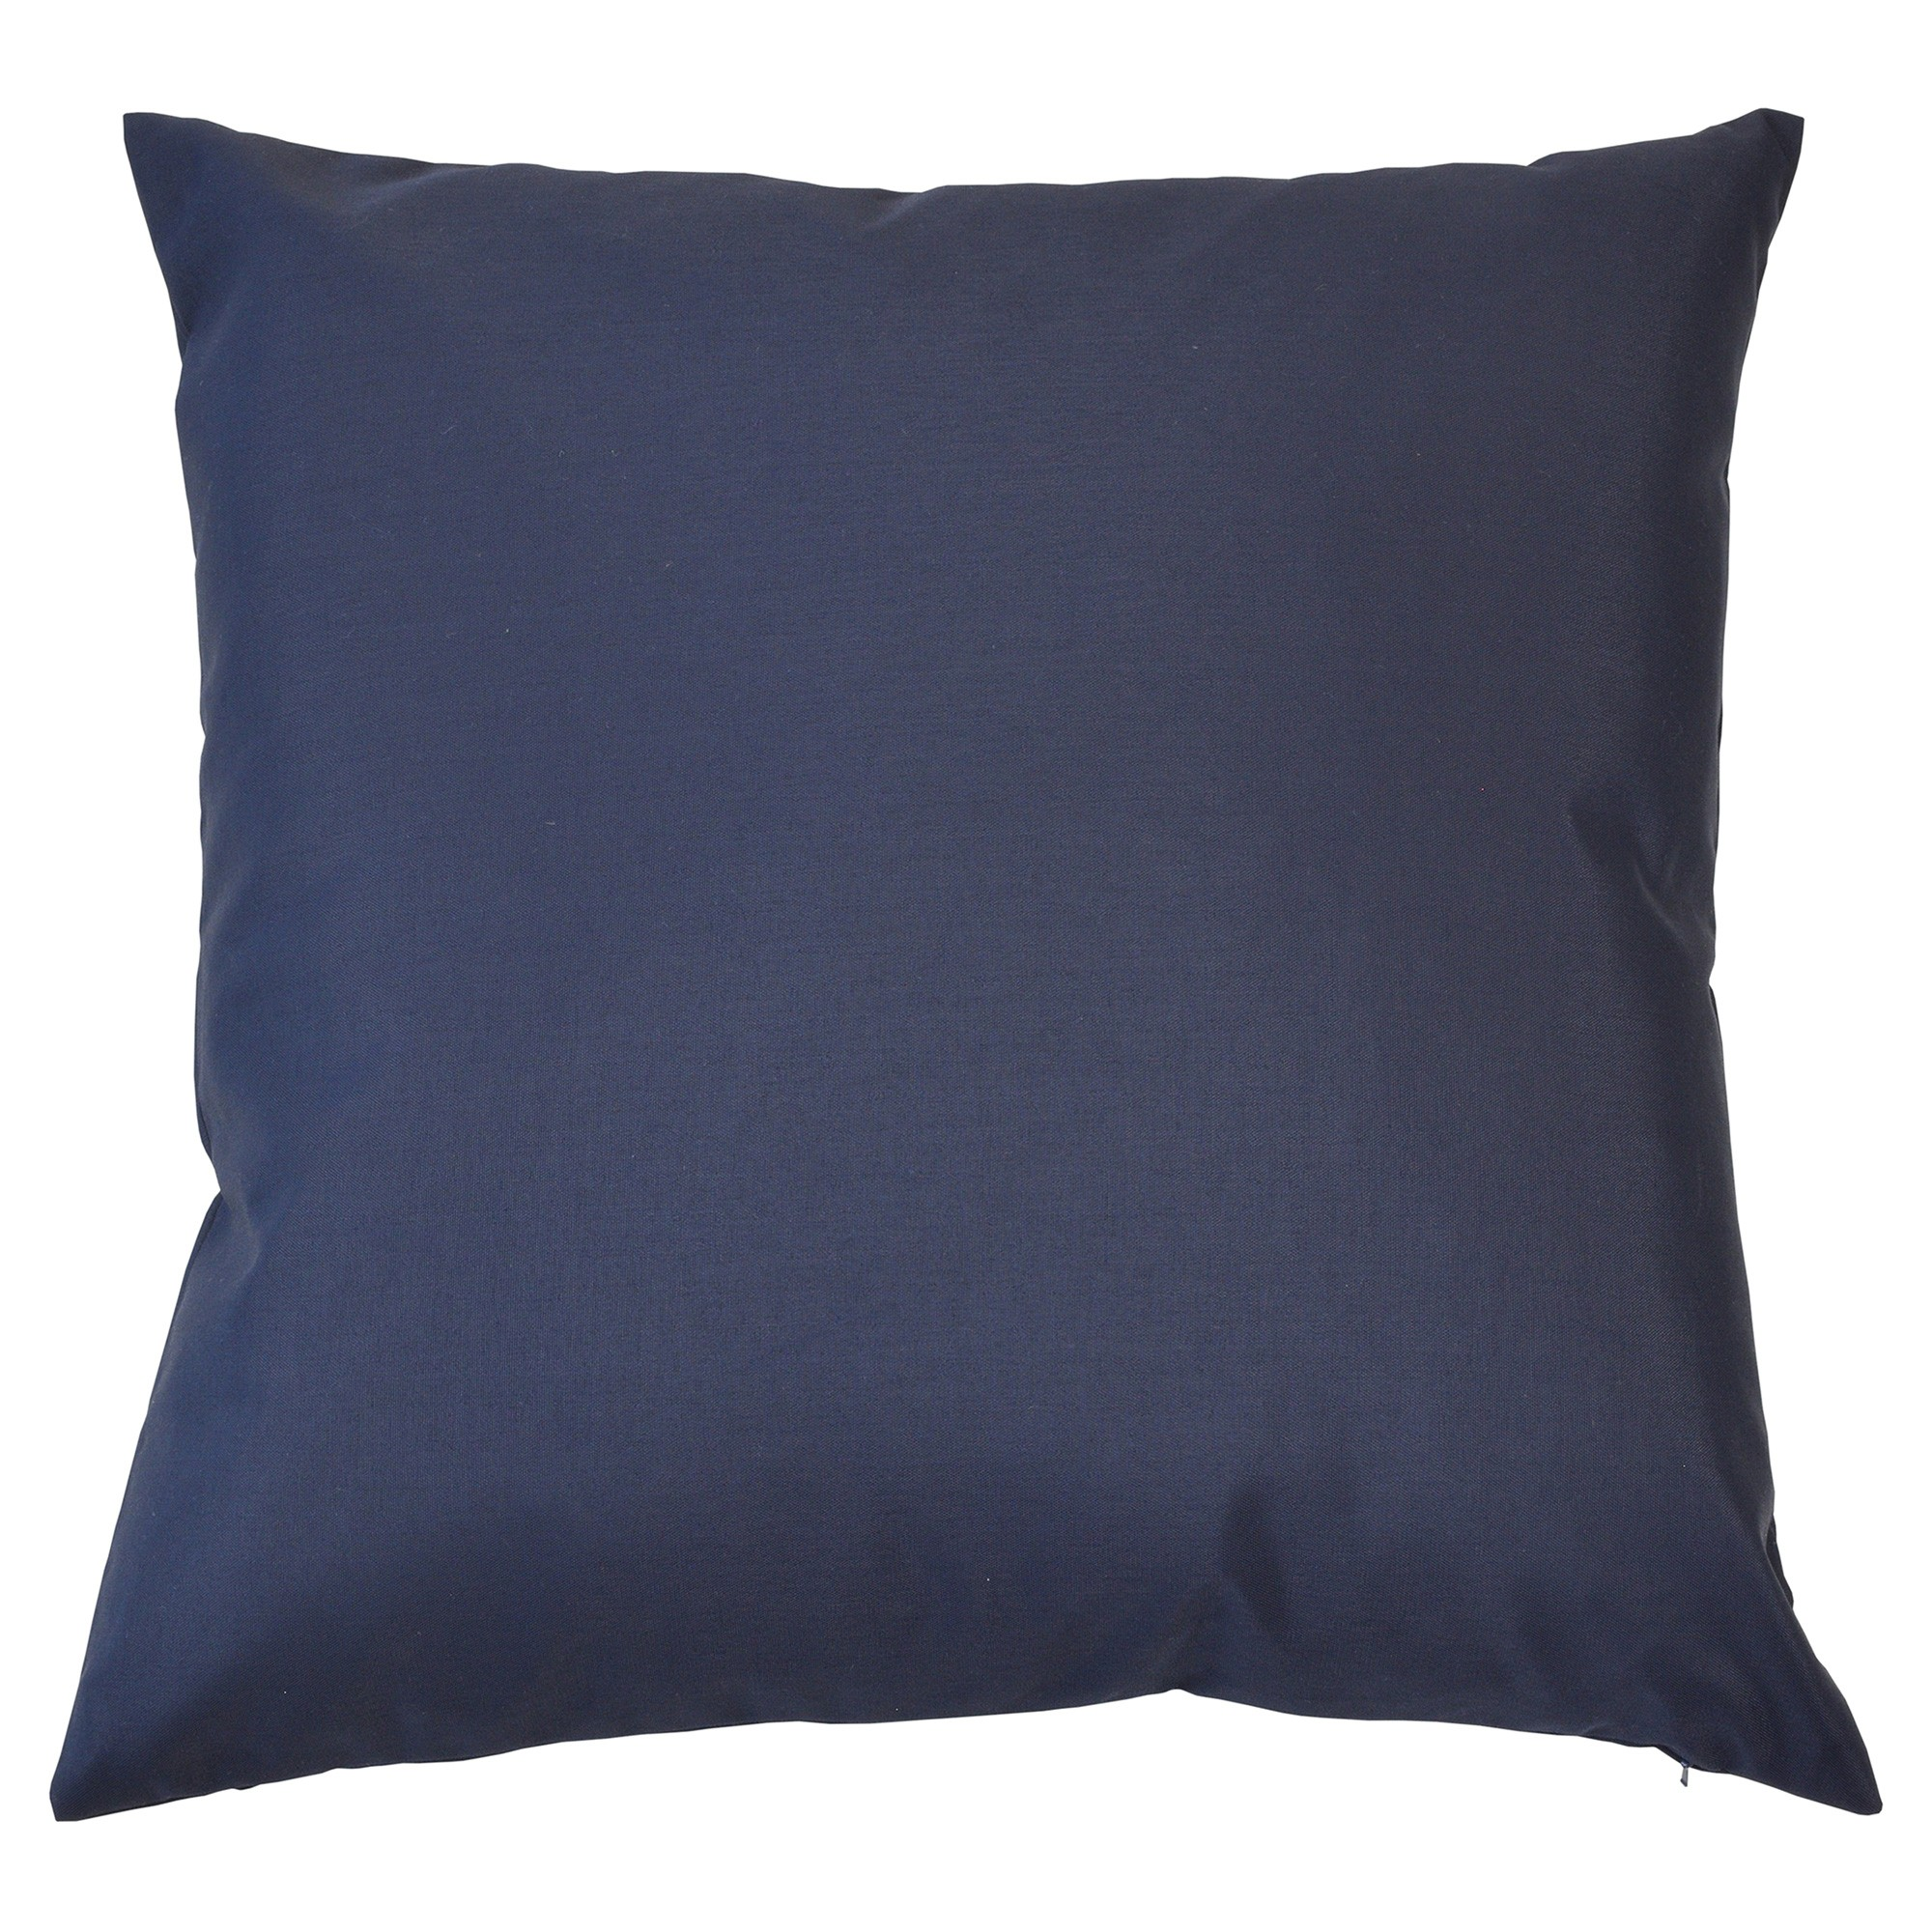 Miami Fabric Indoor / Outdoor Euro Cushion Cover, Navy